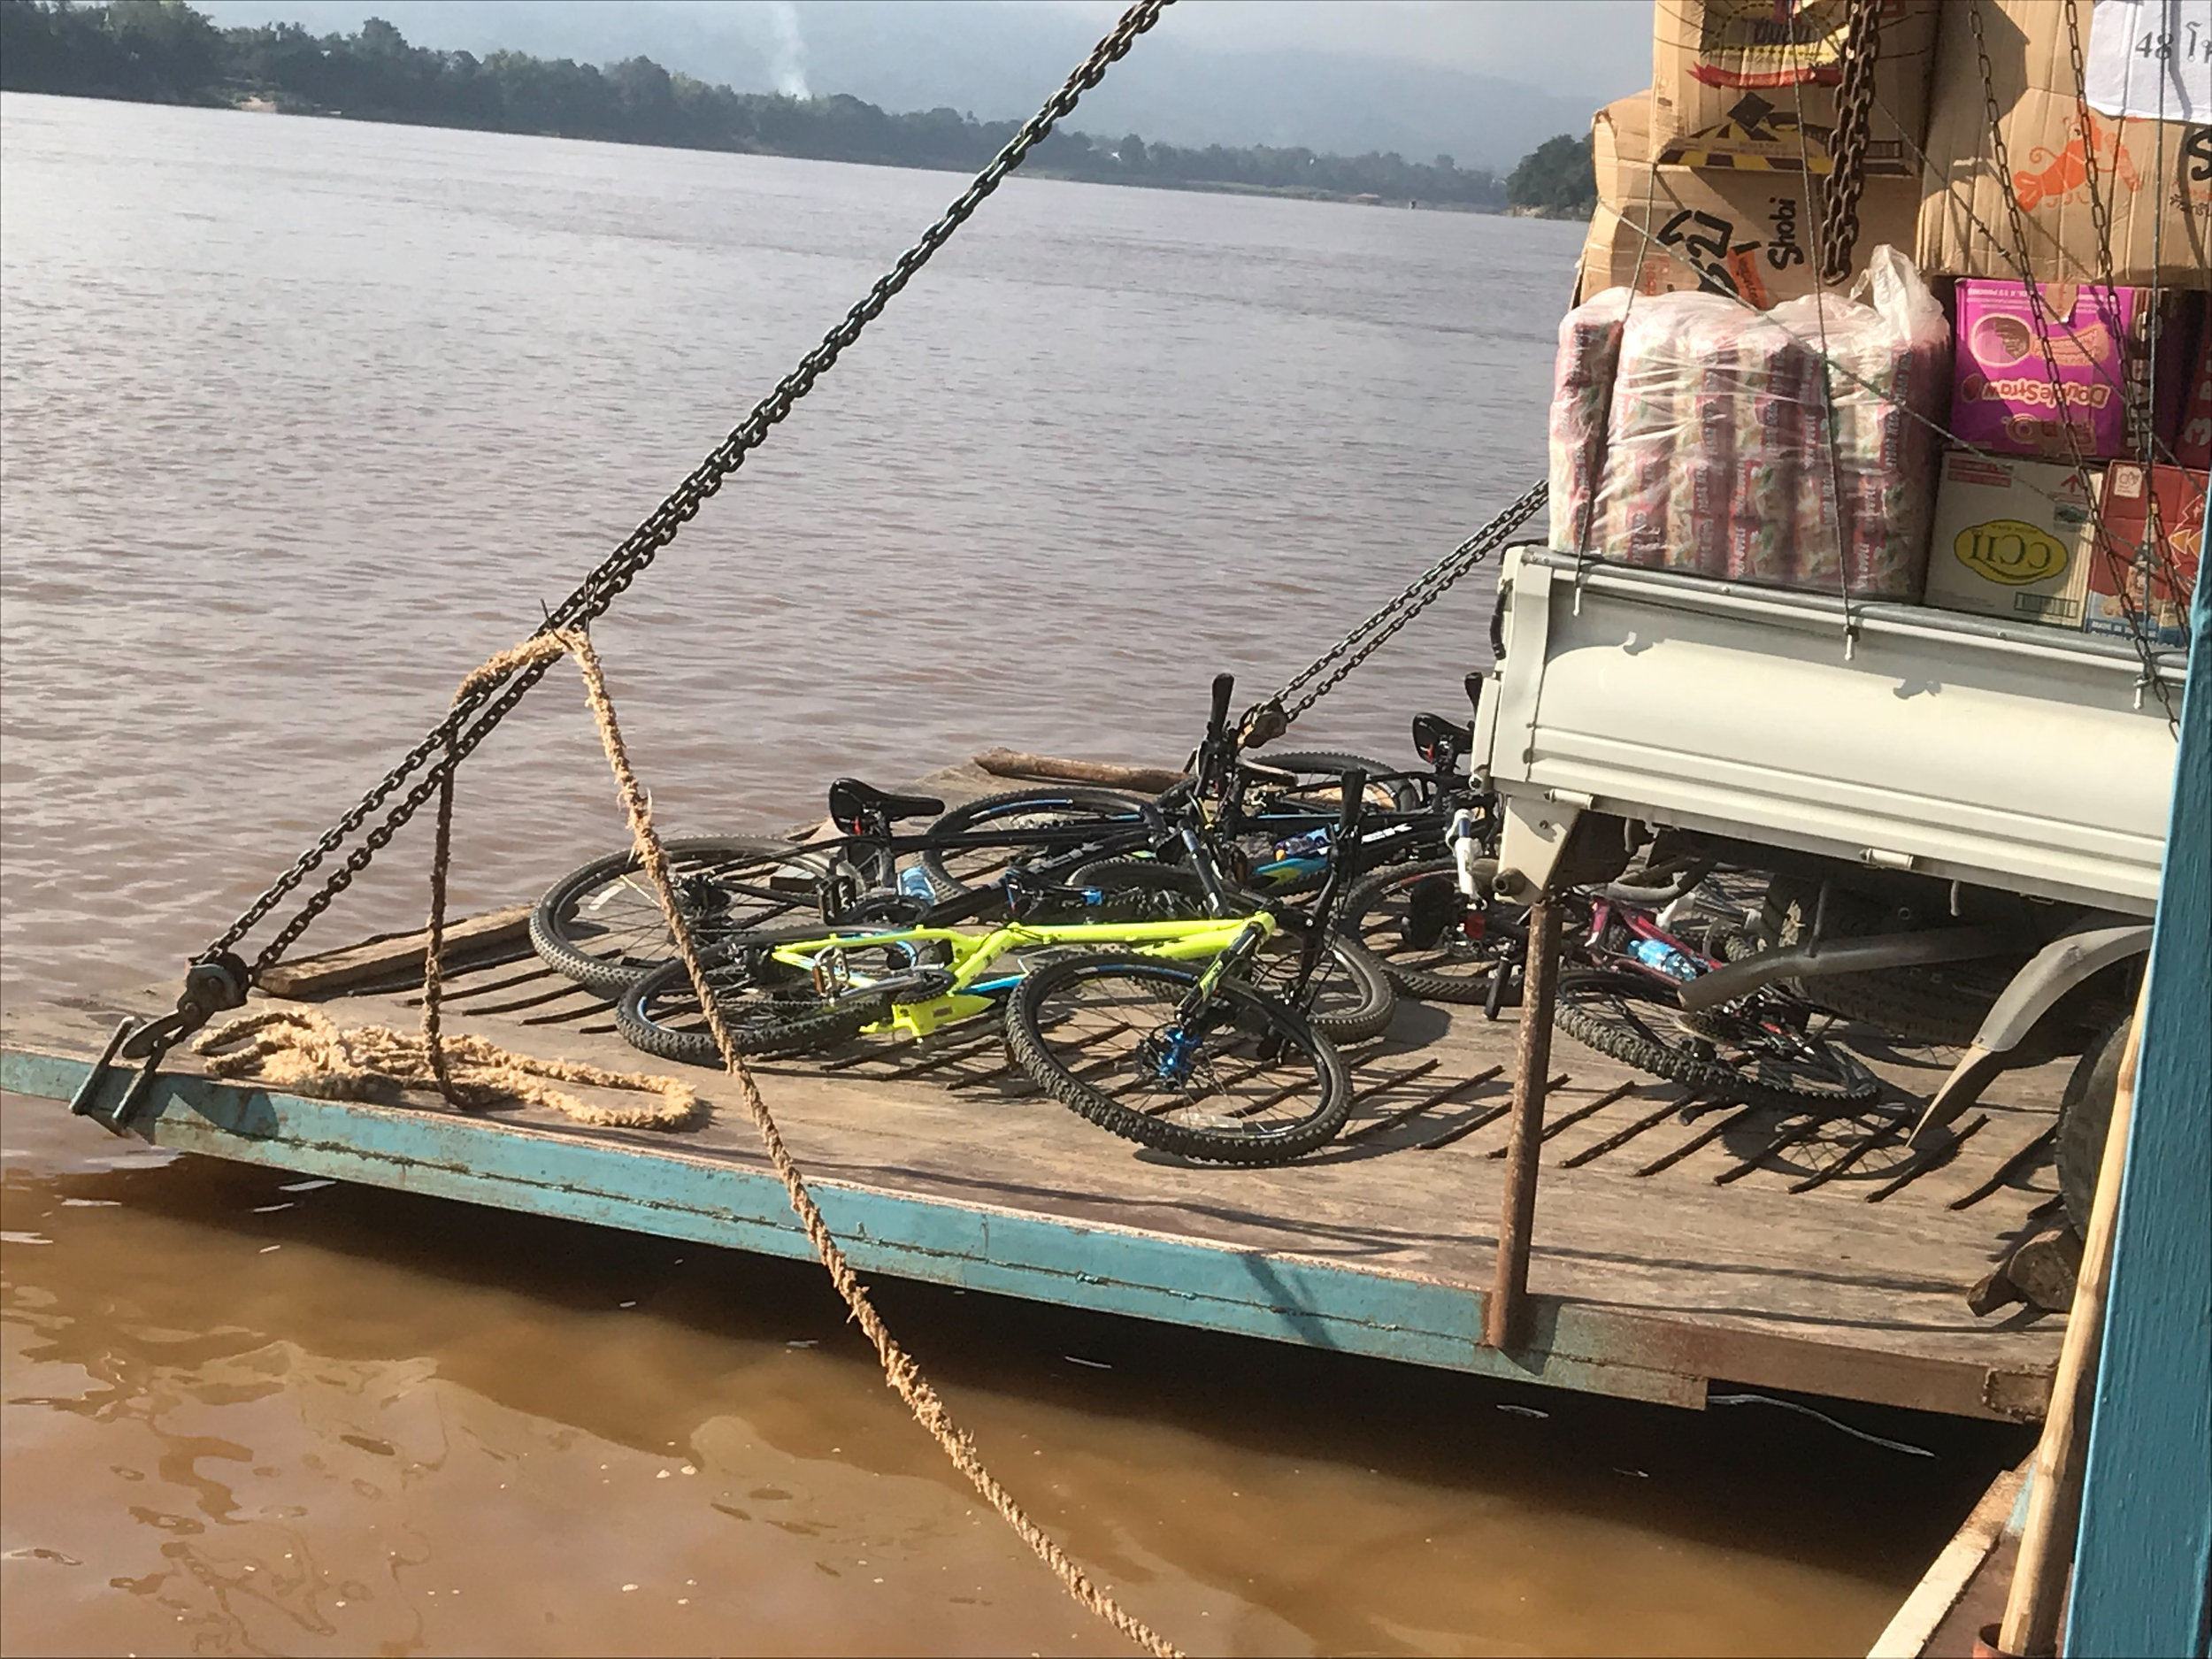 Our bicycles on the ferry across the Mekong, Luang Prabang, 3 Dec 2017.jpg